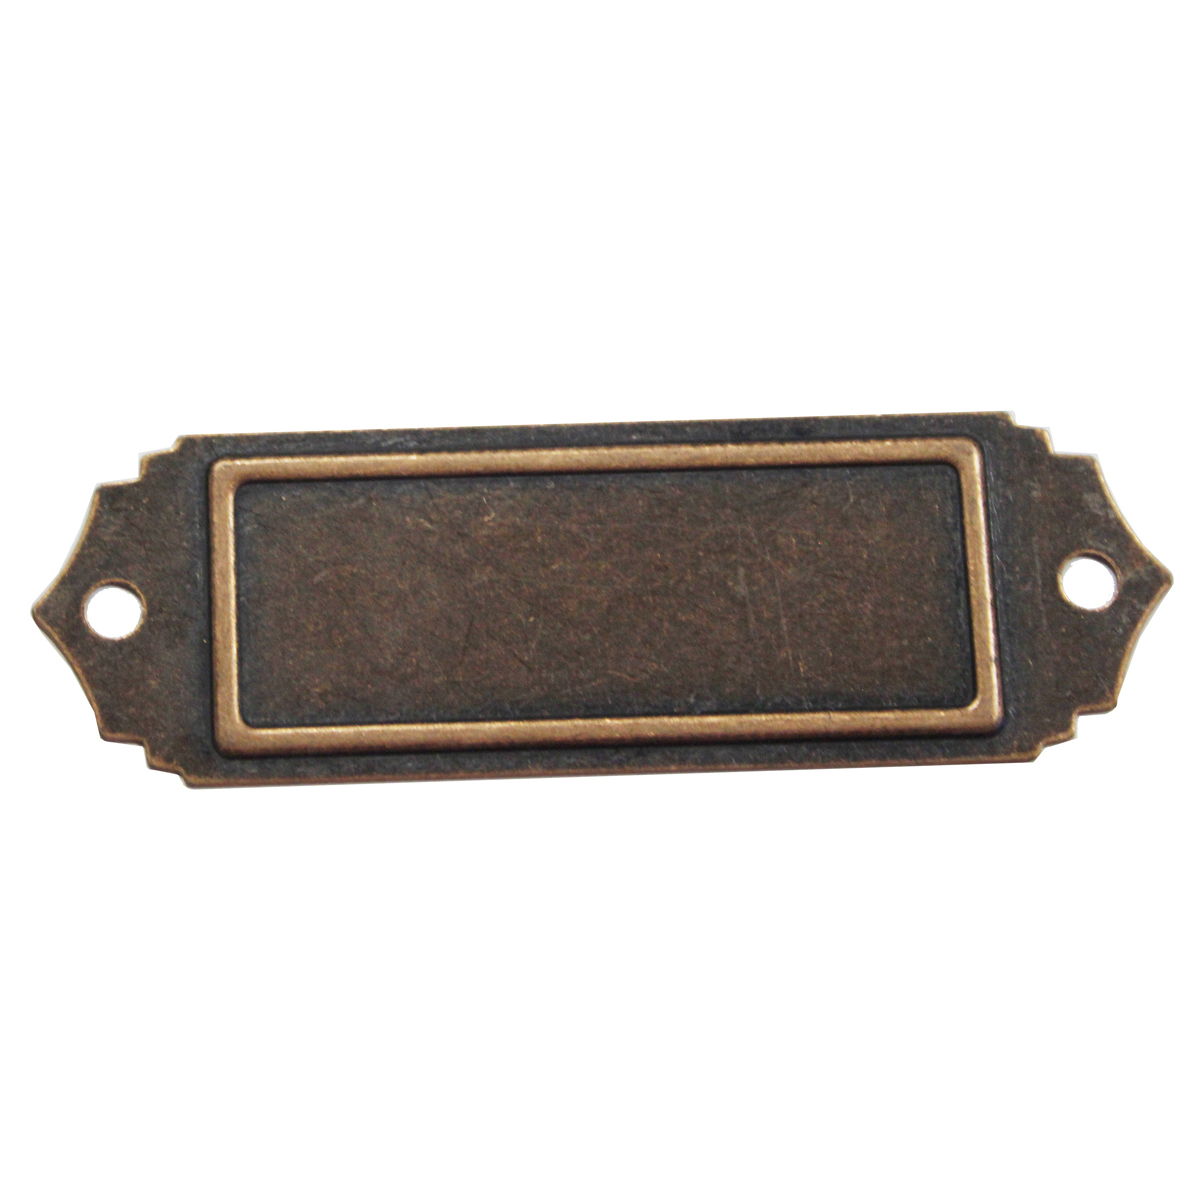 Brass Embellishments Scalloped Name Plate